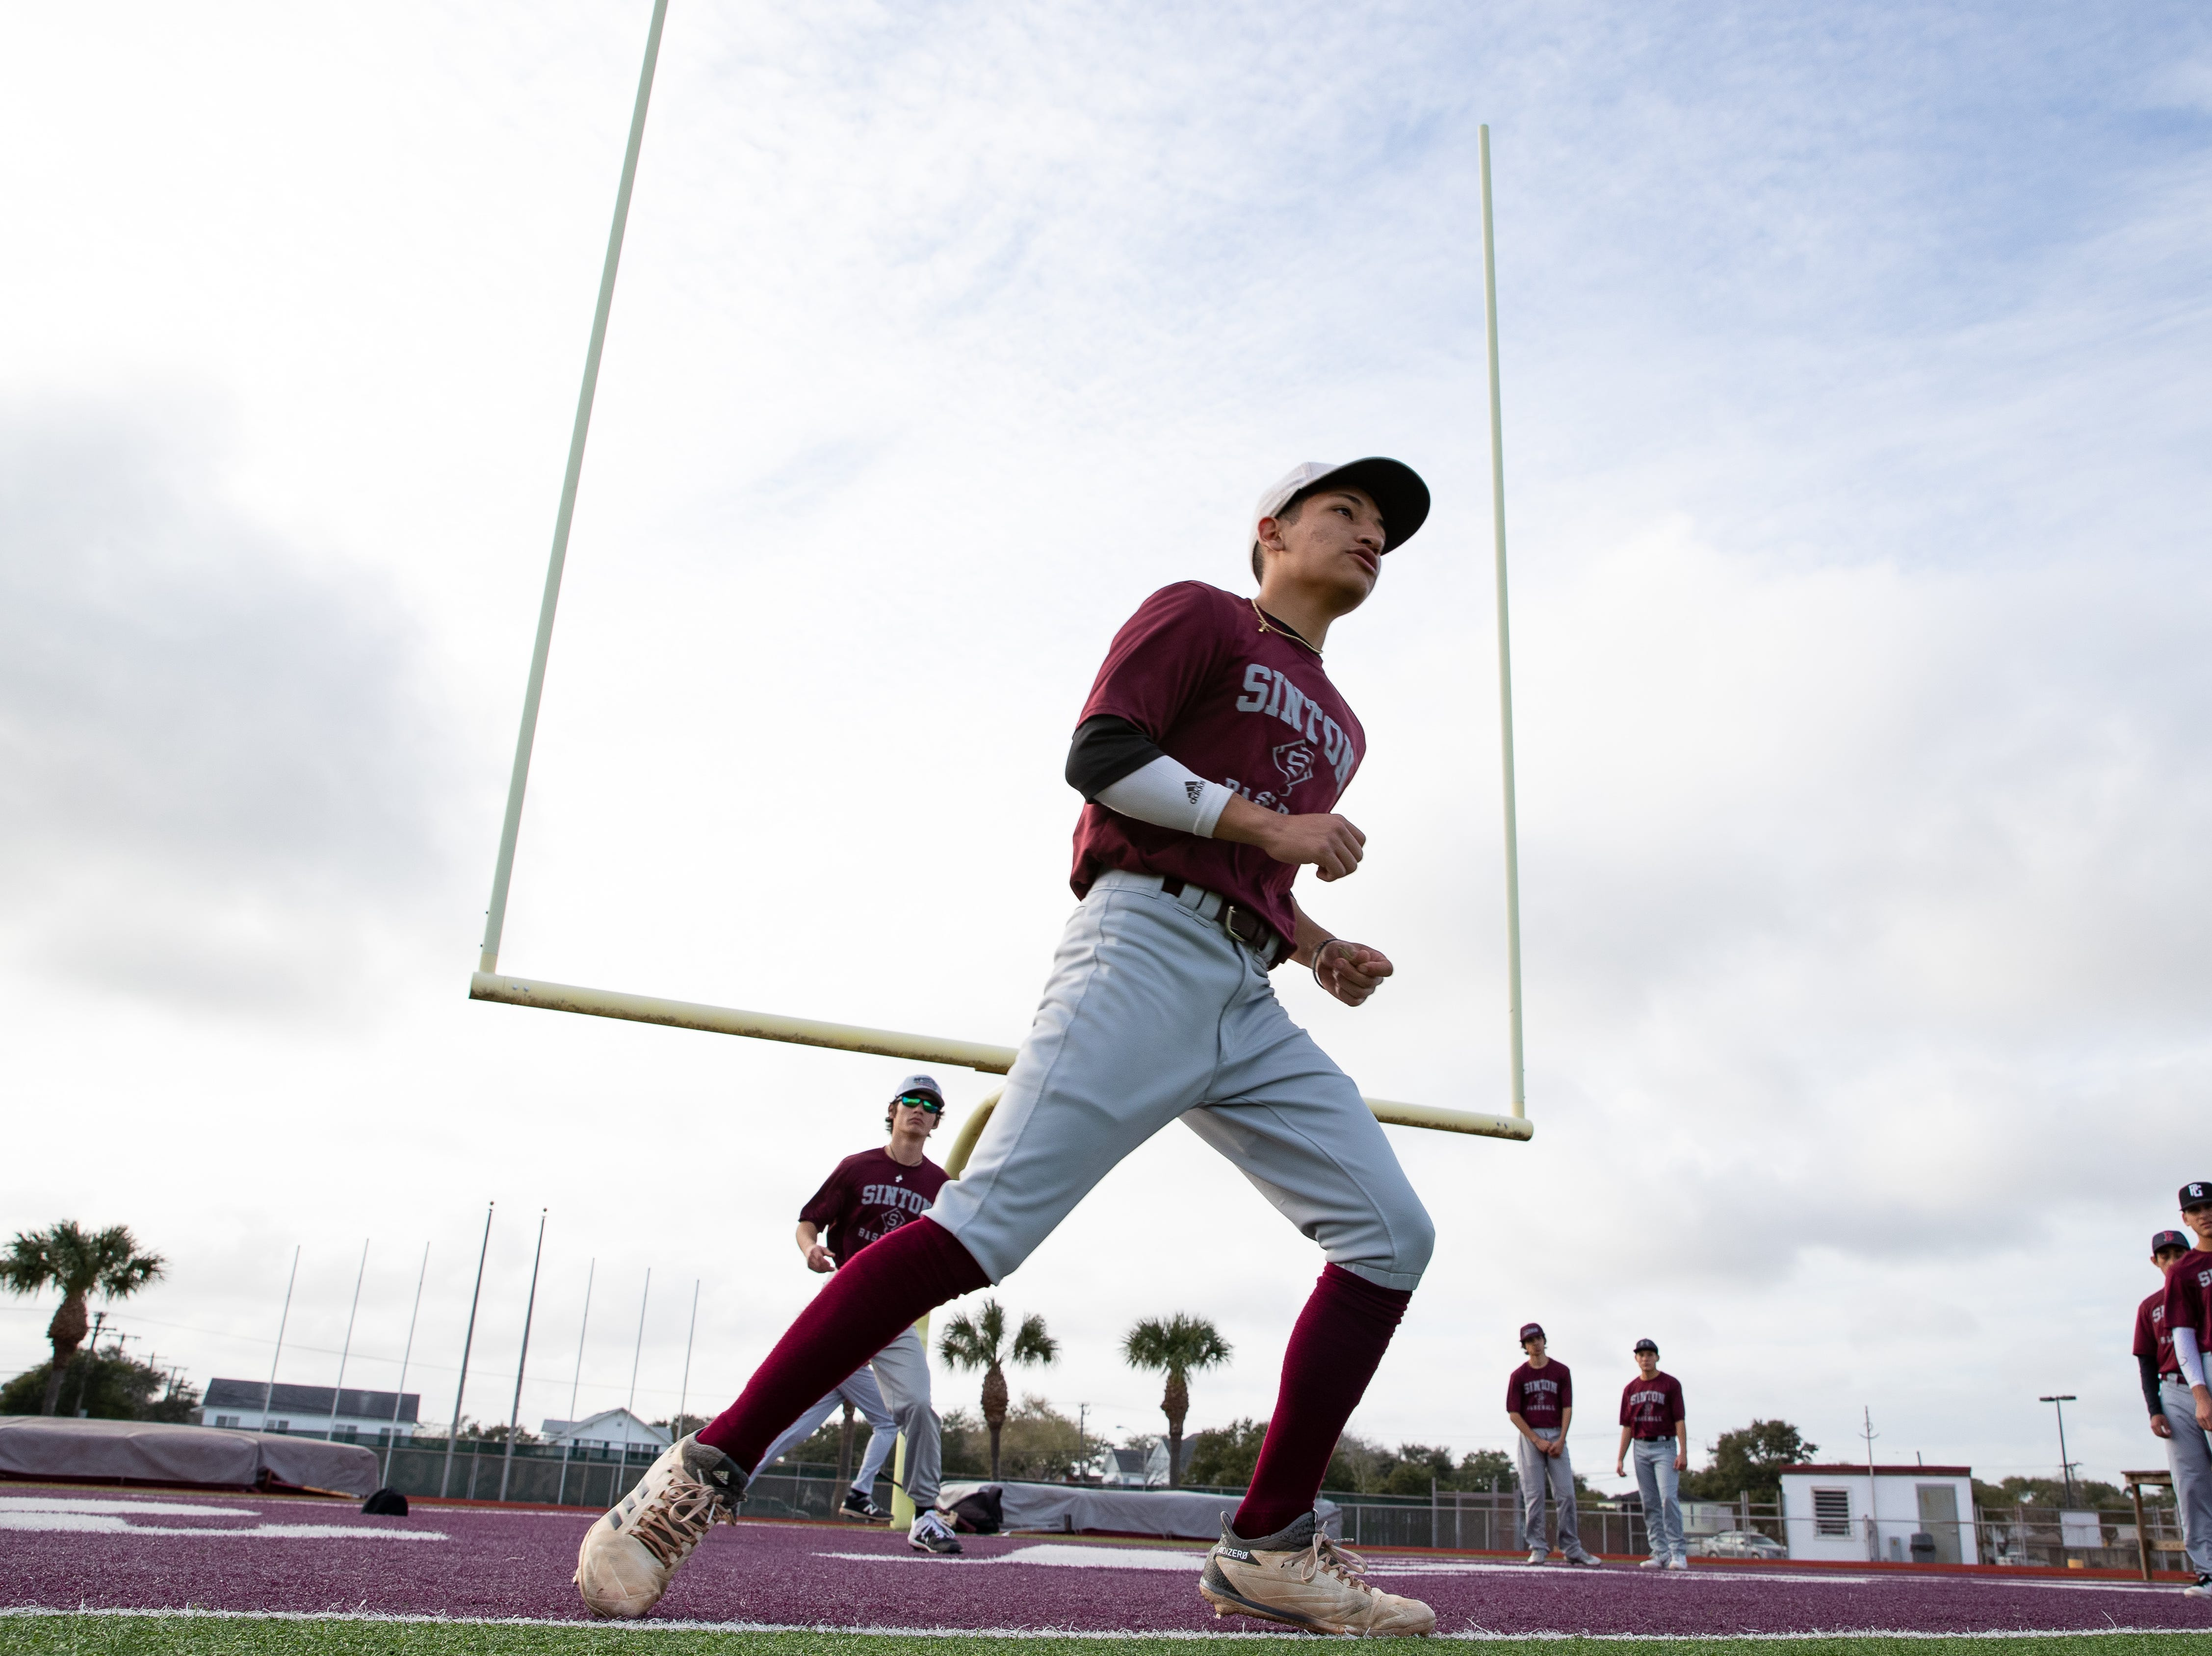 Sinton High School baseball team does base running drills during practice on the football field do to a wet field on Friday, Feb. 1, 2019.